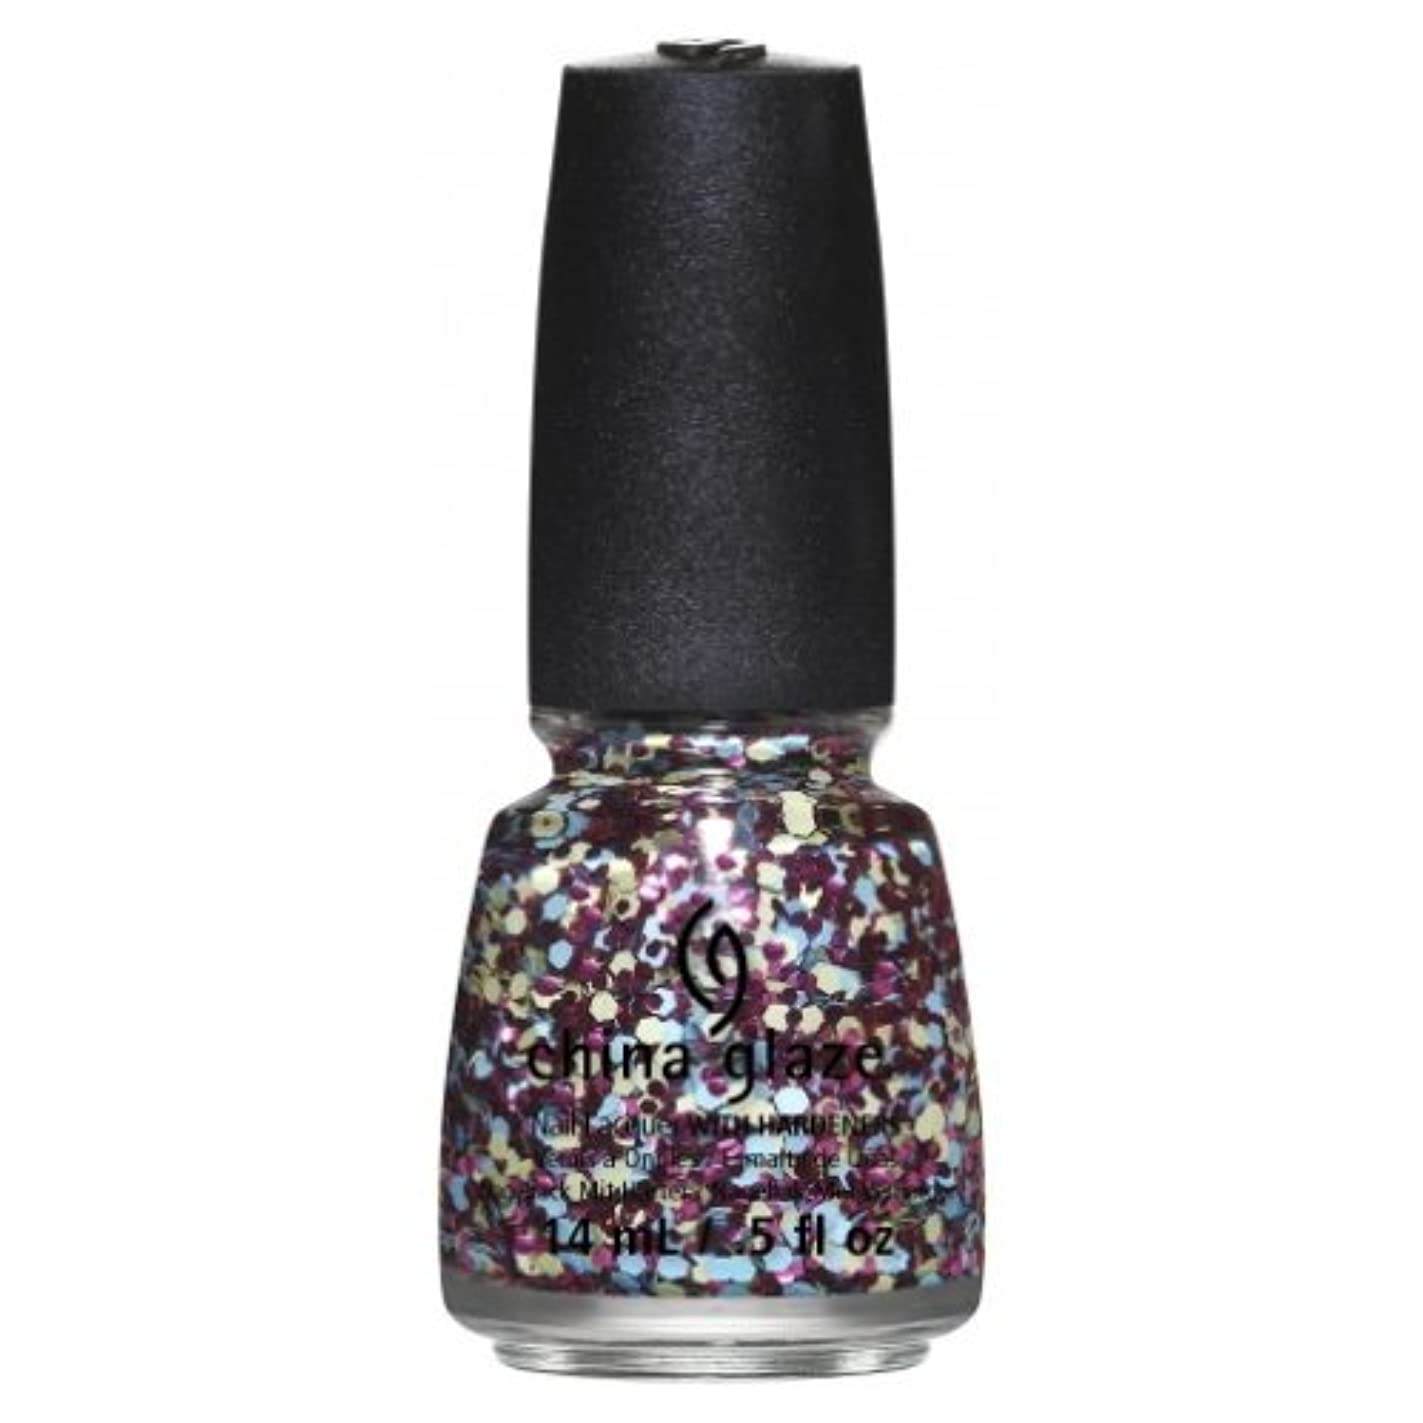 家庭教師地域場所(3 Pack) CHINA GLAZE Nail Lacquer - Suprise Collection - I'm A Go Glitter (並行輸入品)